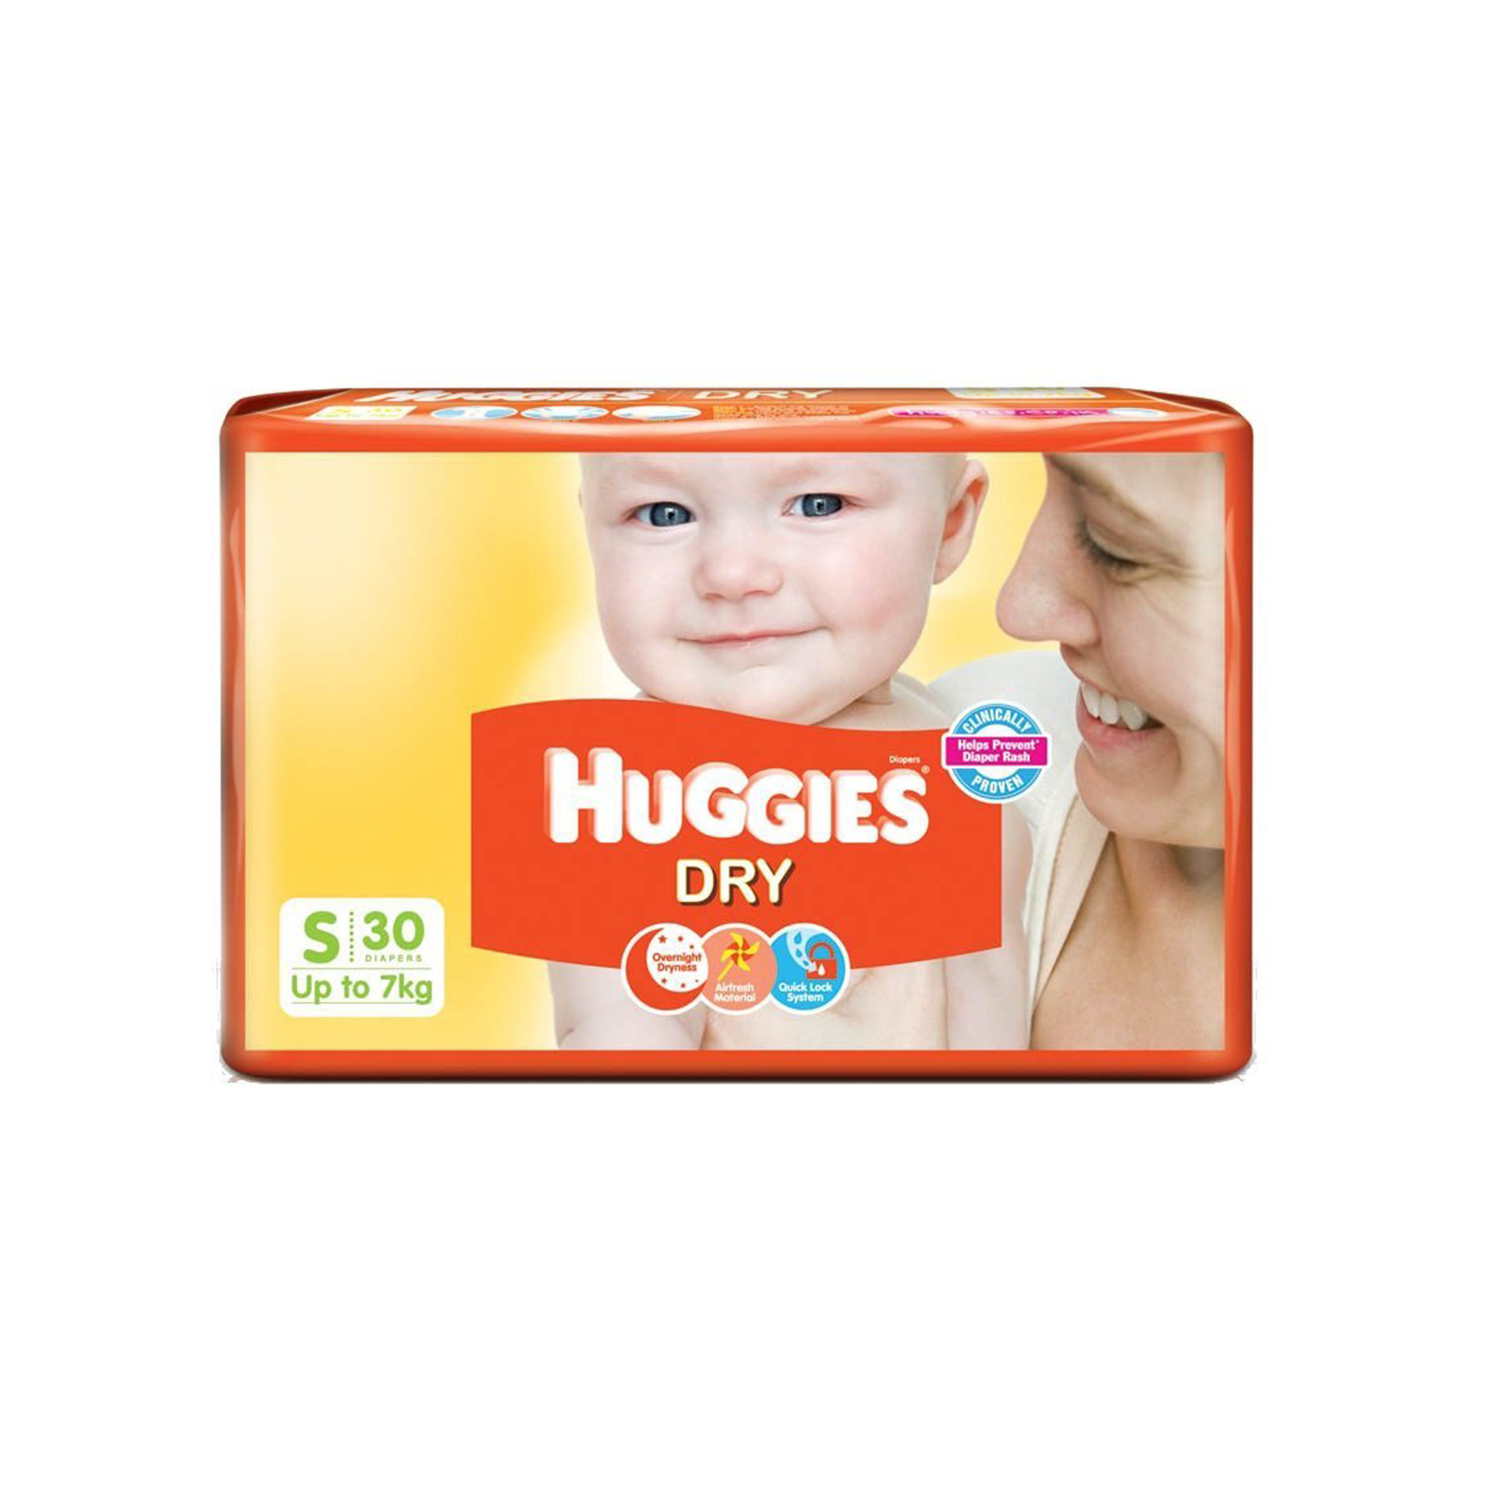 Huggies Dry Diapers Small - 30 Nos